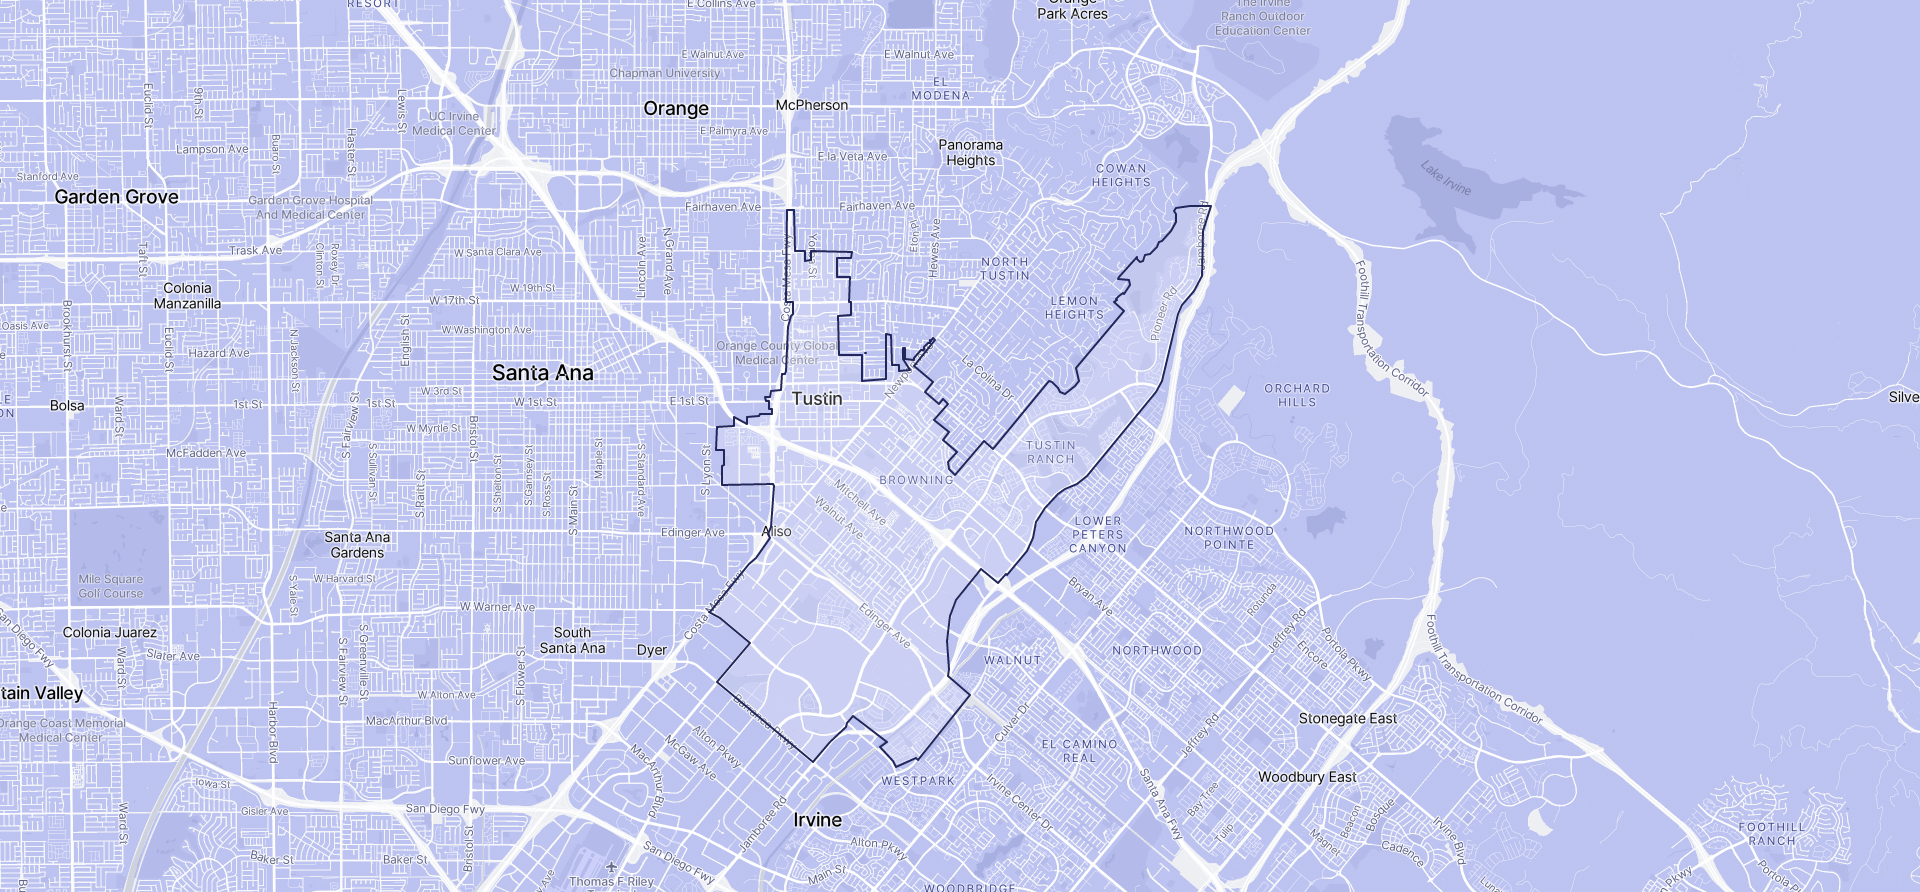 Image of Tustin boundaries on a map.